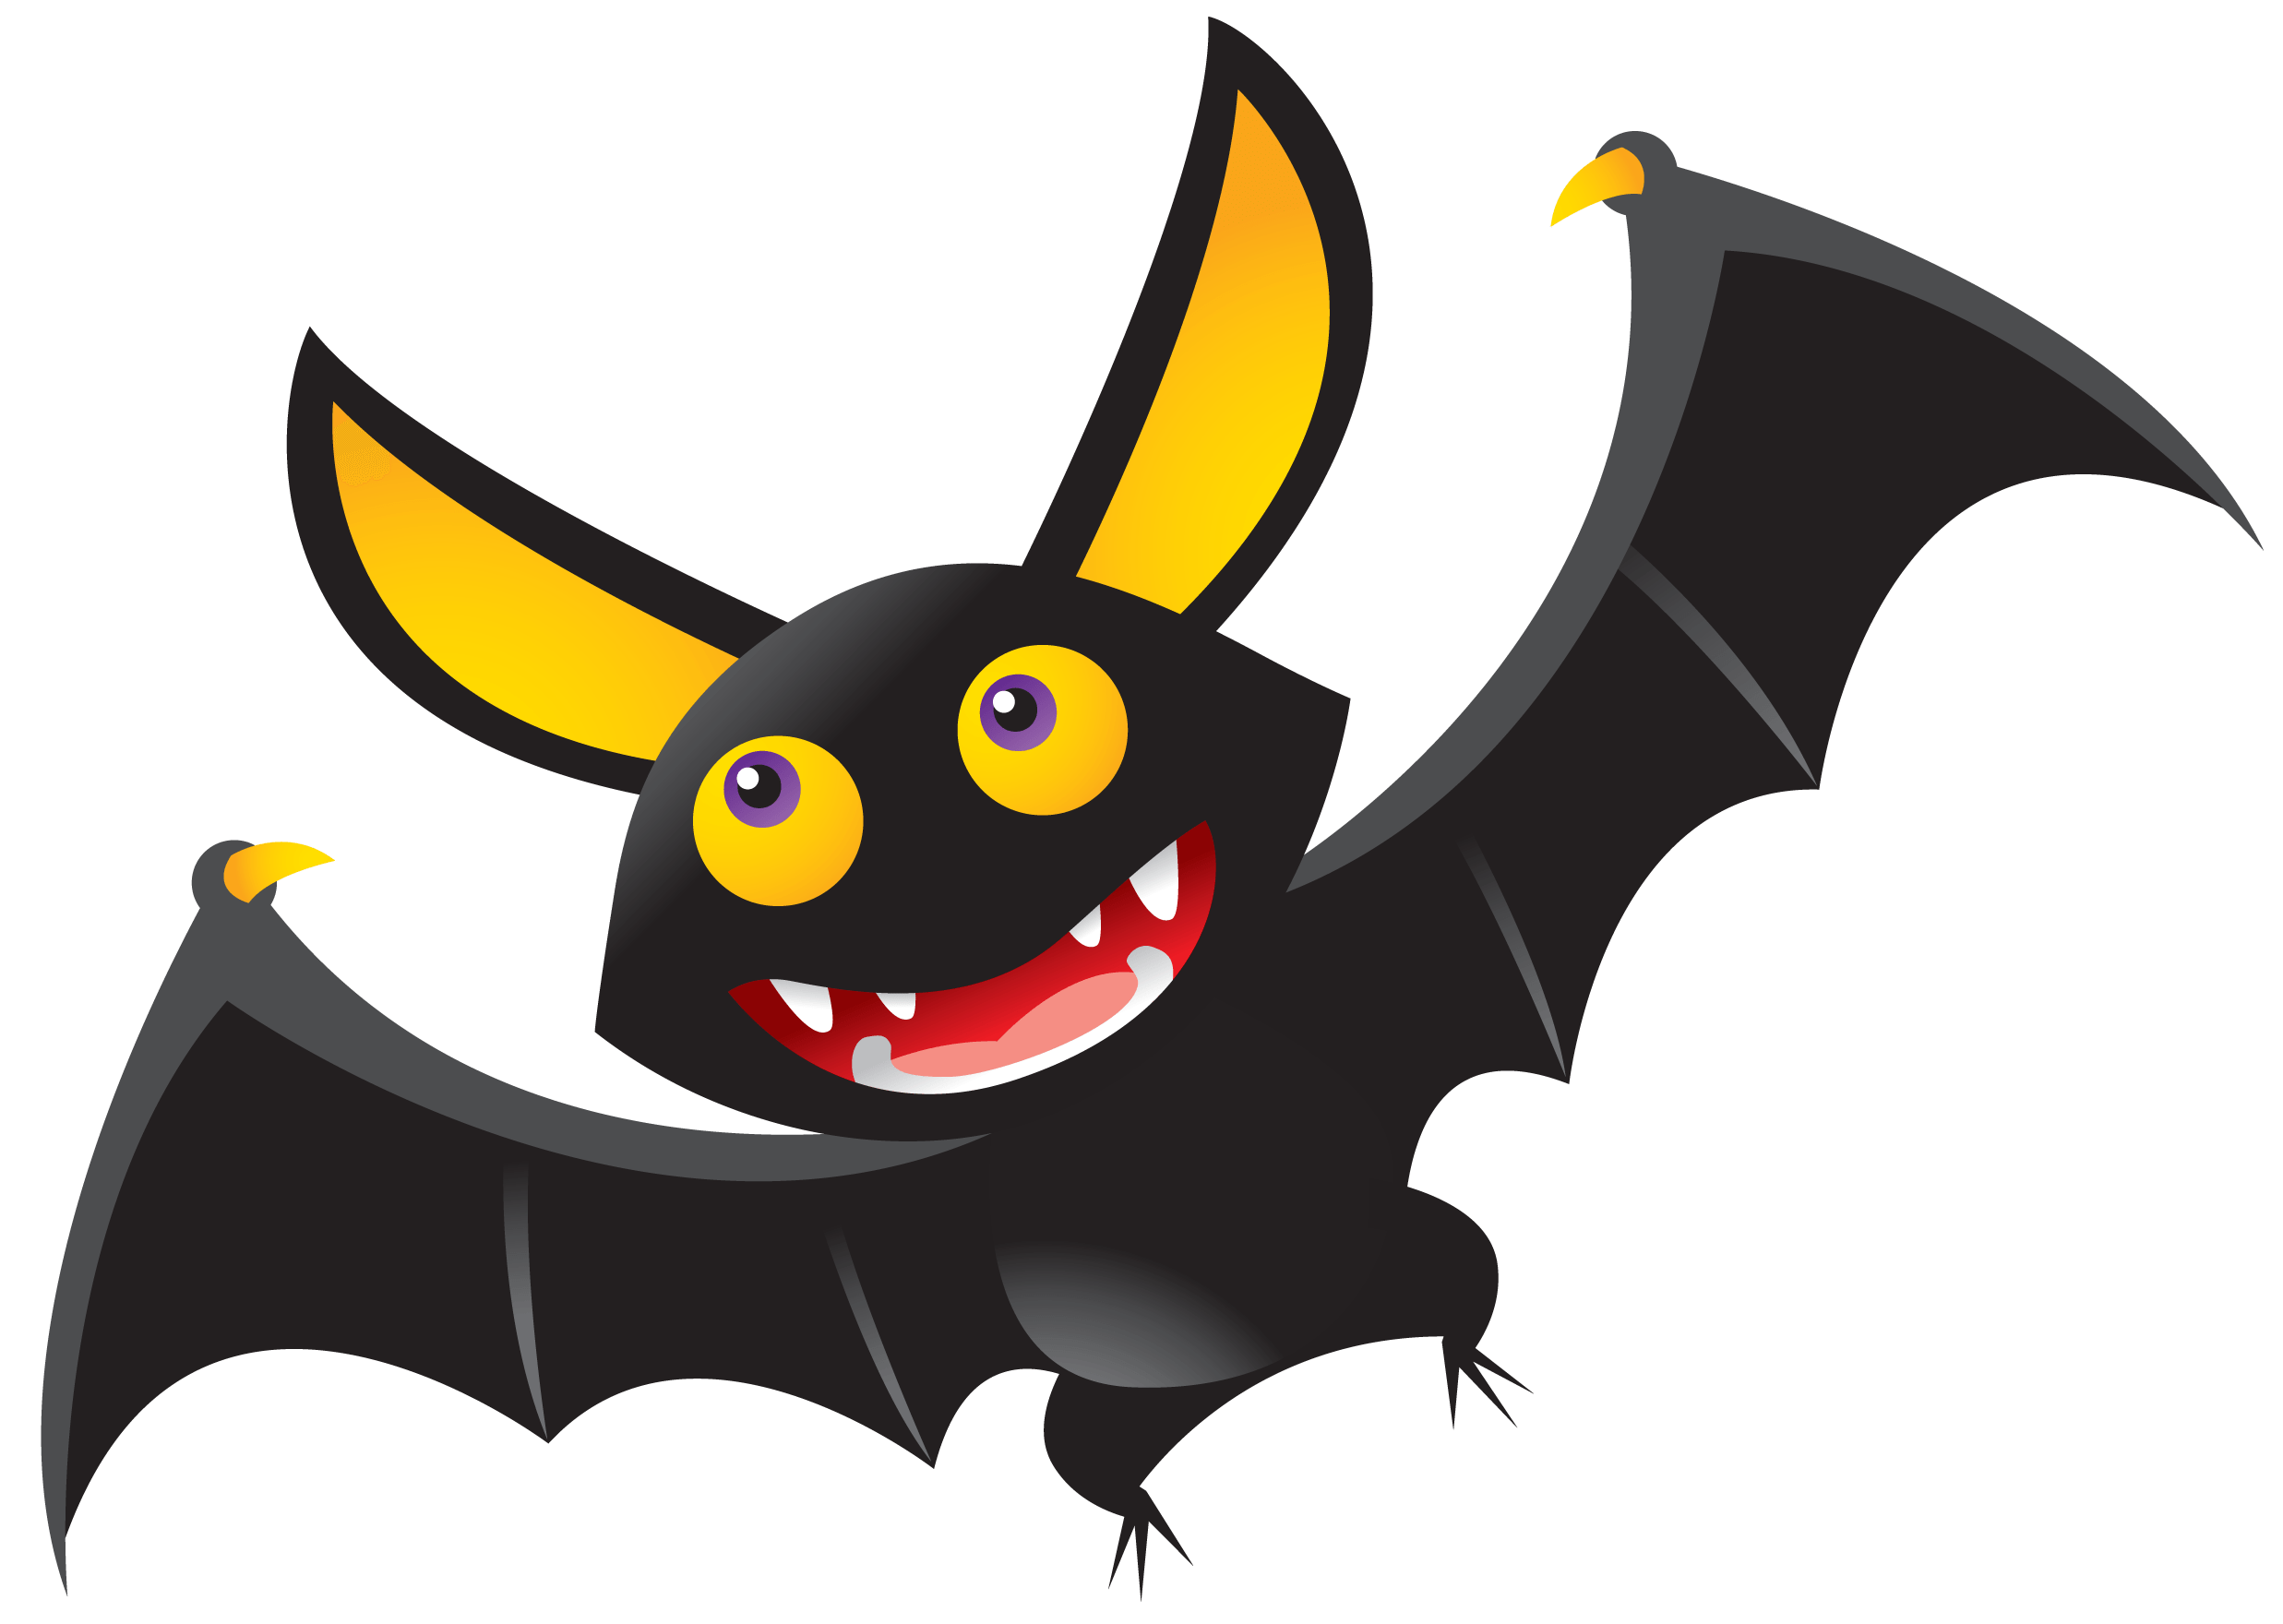 Halloween bats png. Bat illustration transparent stickpng